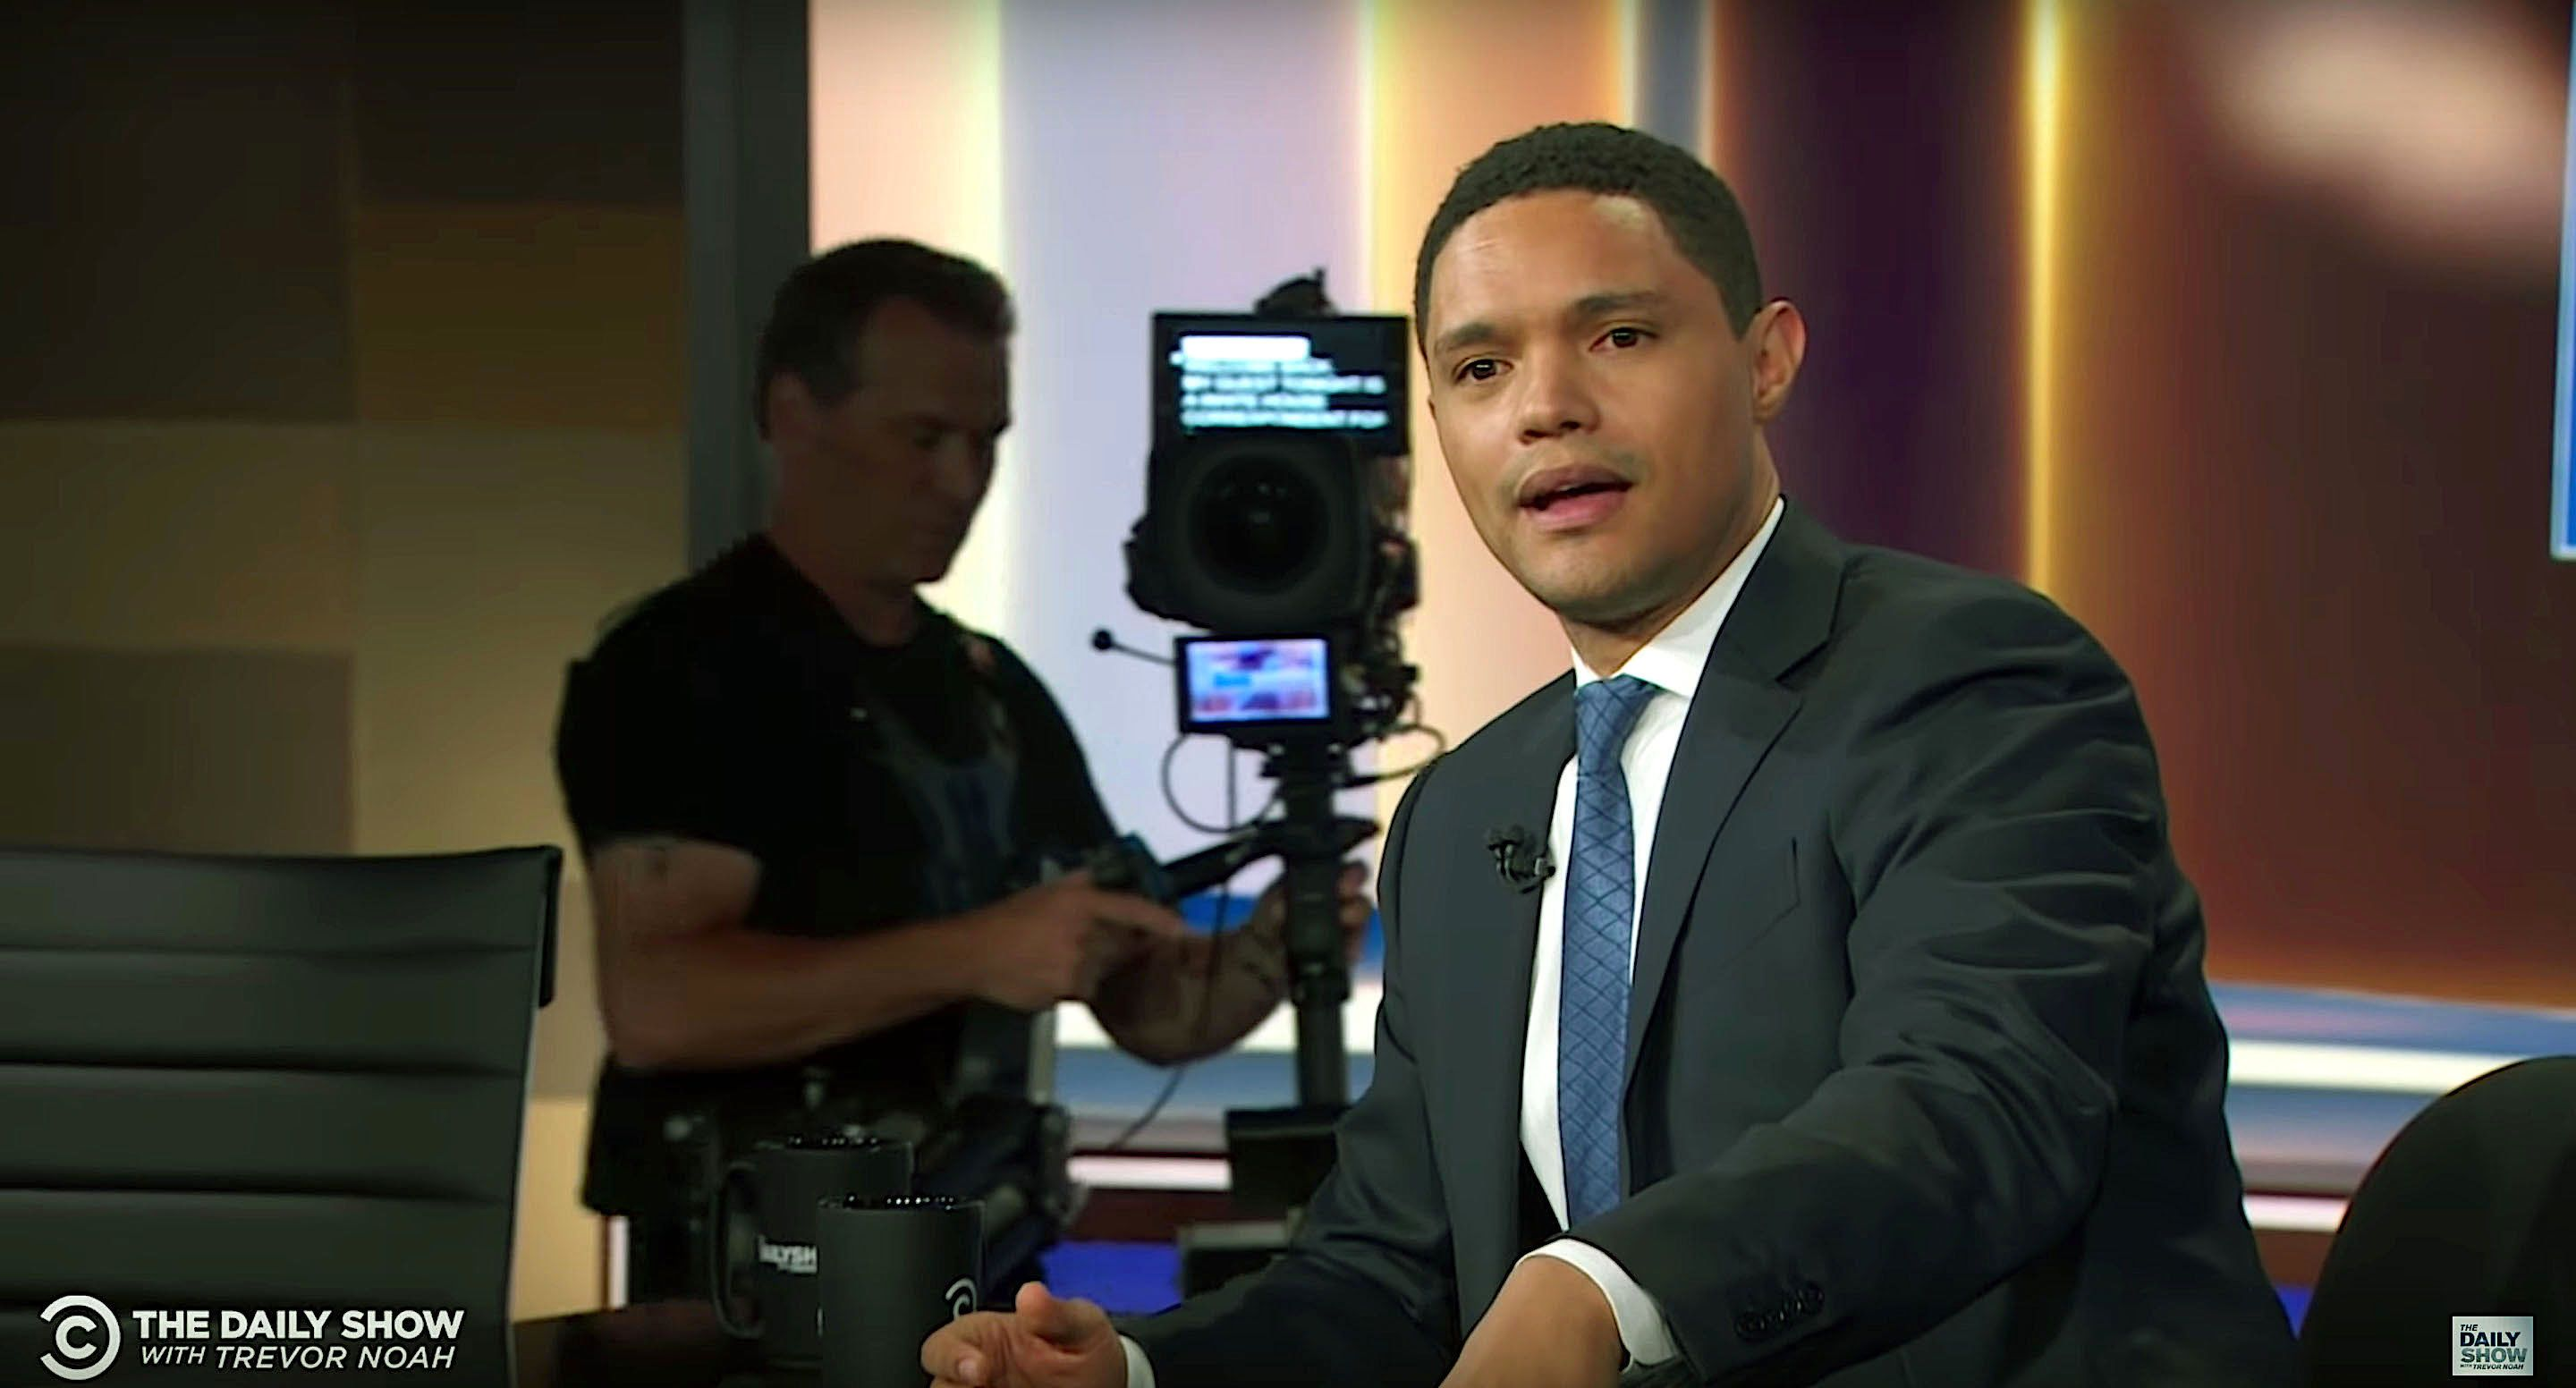 Trevor Noah of The Daily Show tells his studio audience about his dog Fufi